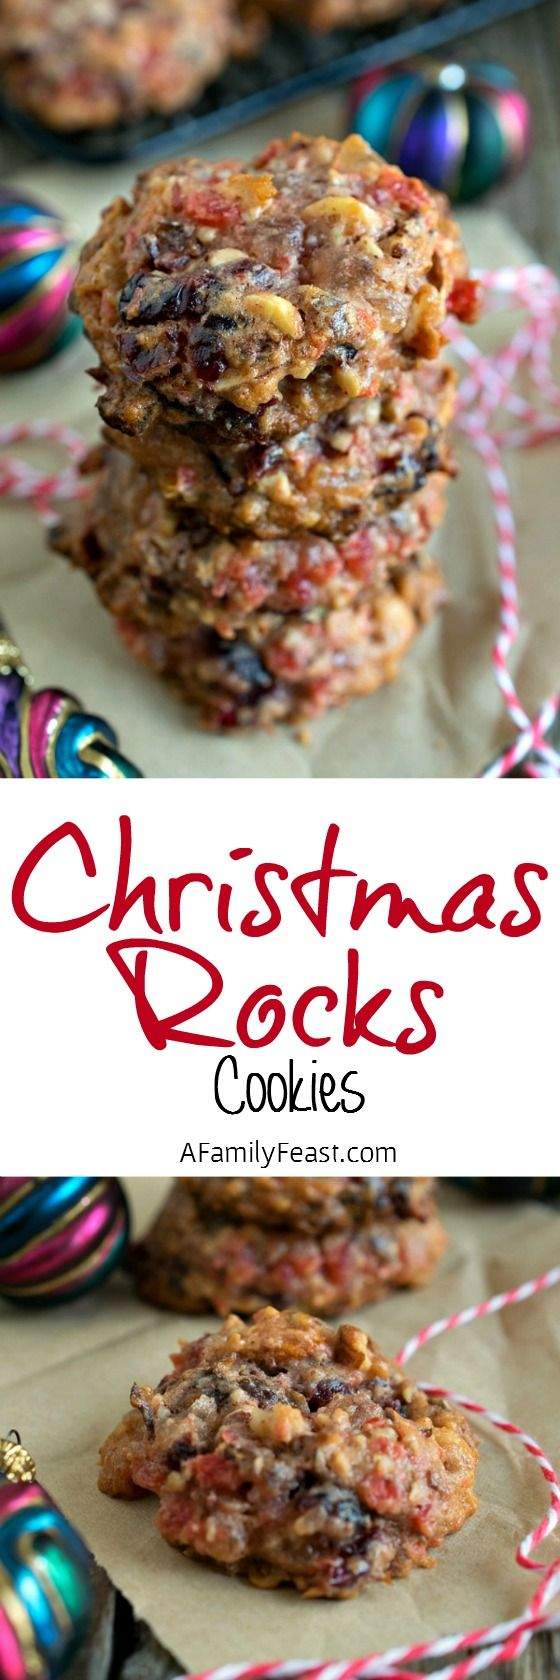 The rock cookies recipes